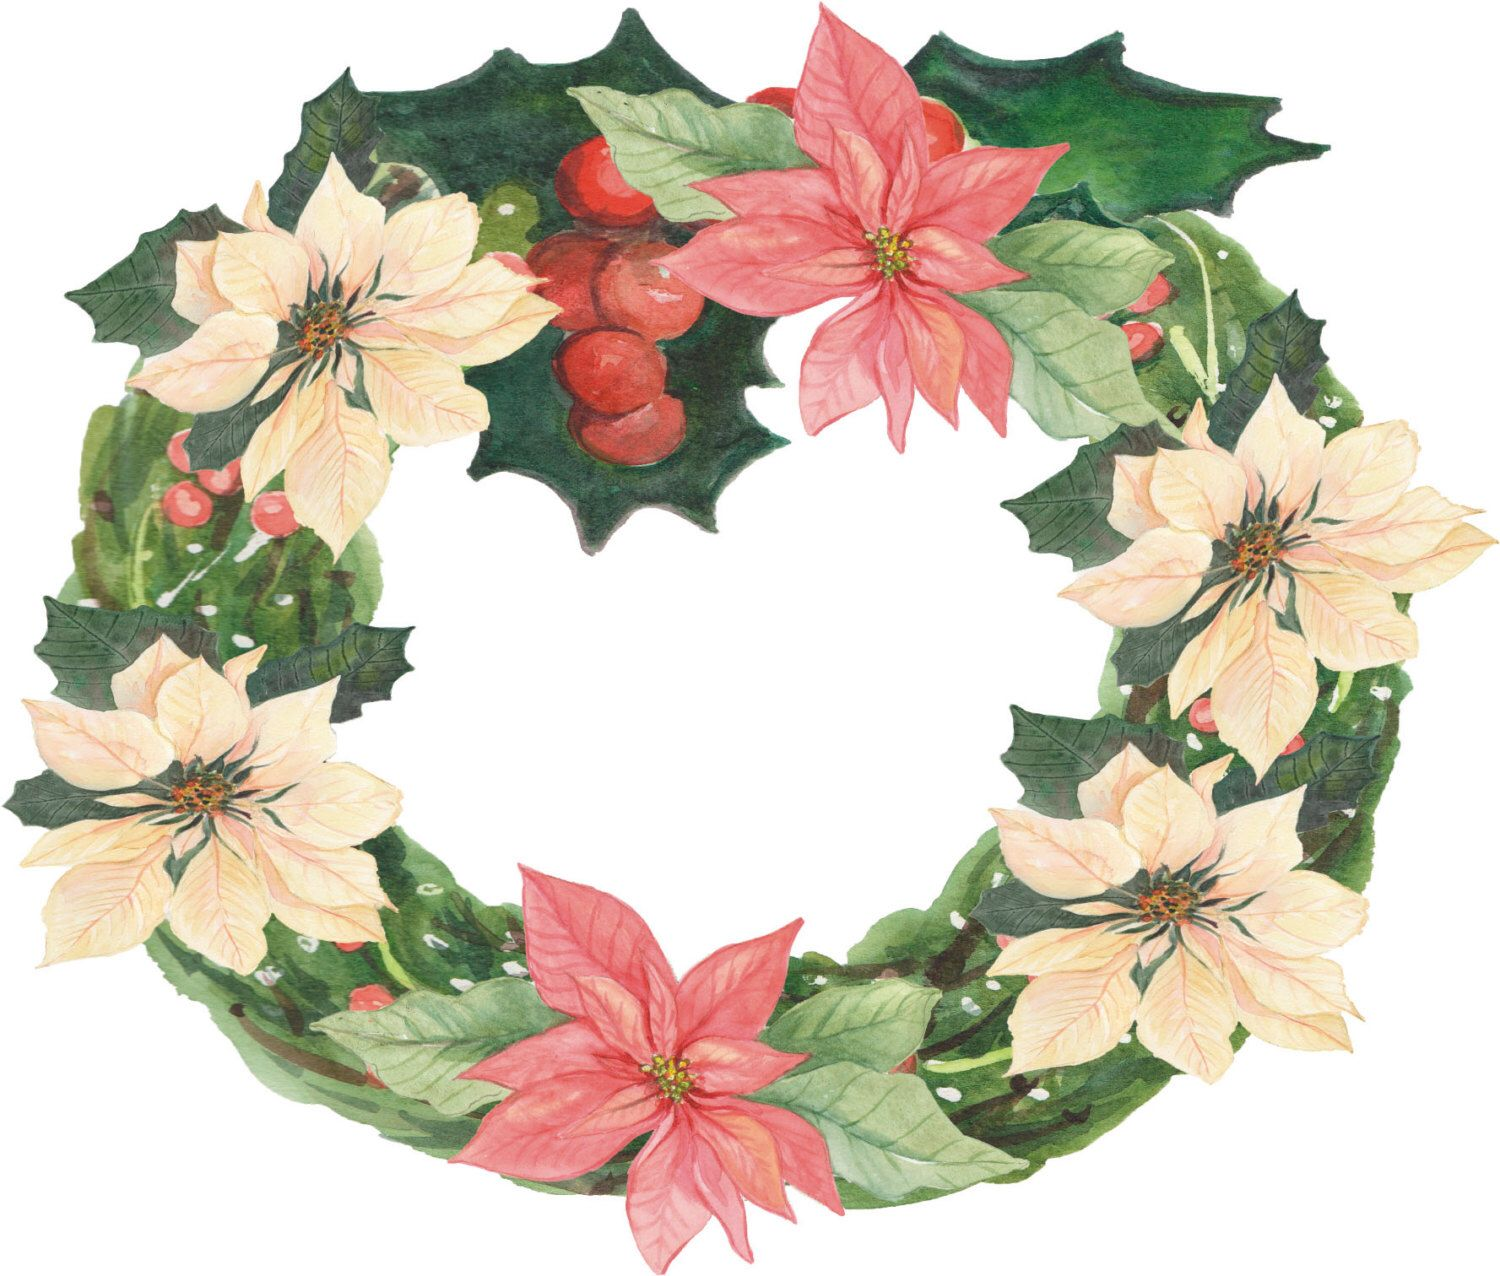 Happy Seasons, Elementos Clipart, Poinsettia, Noche Buena.